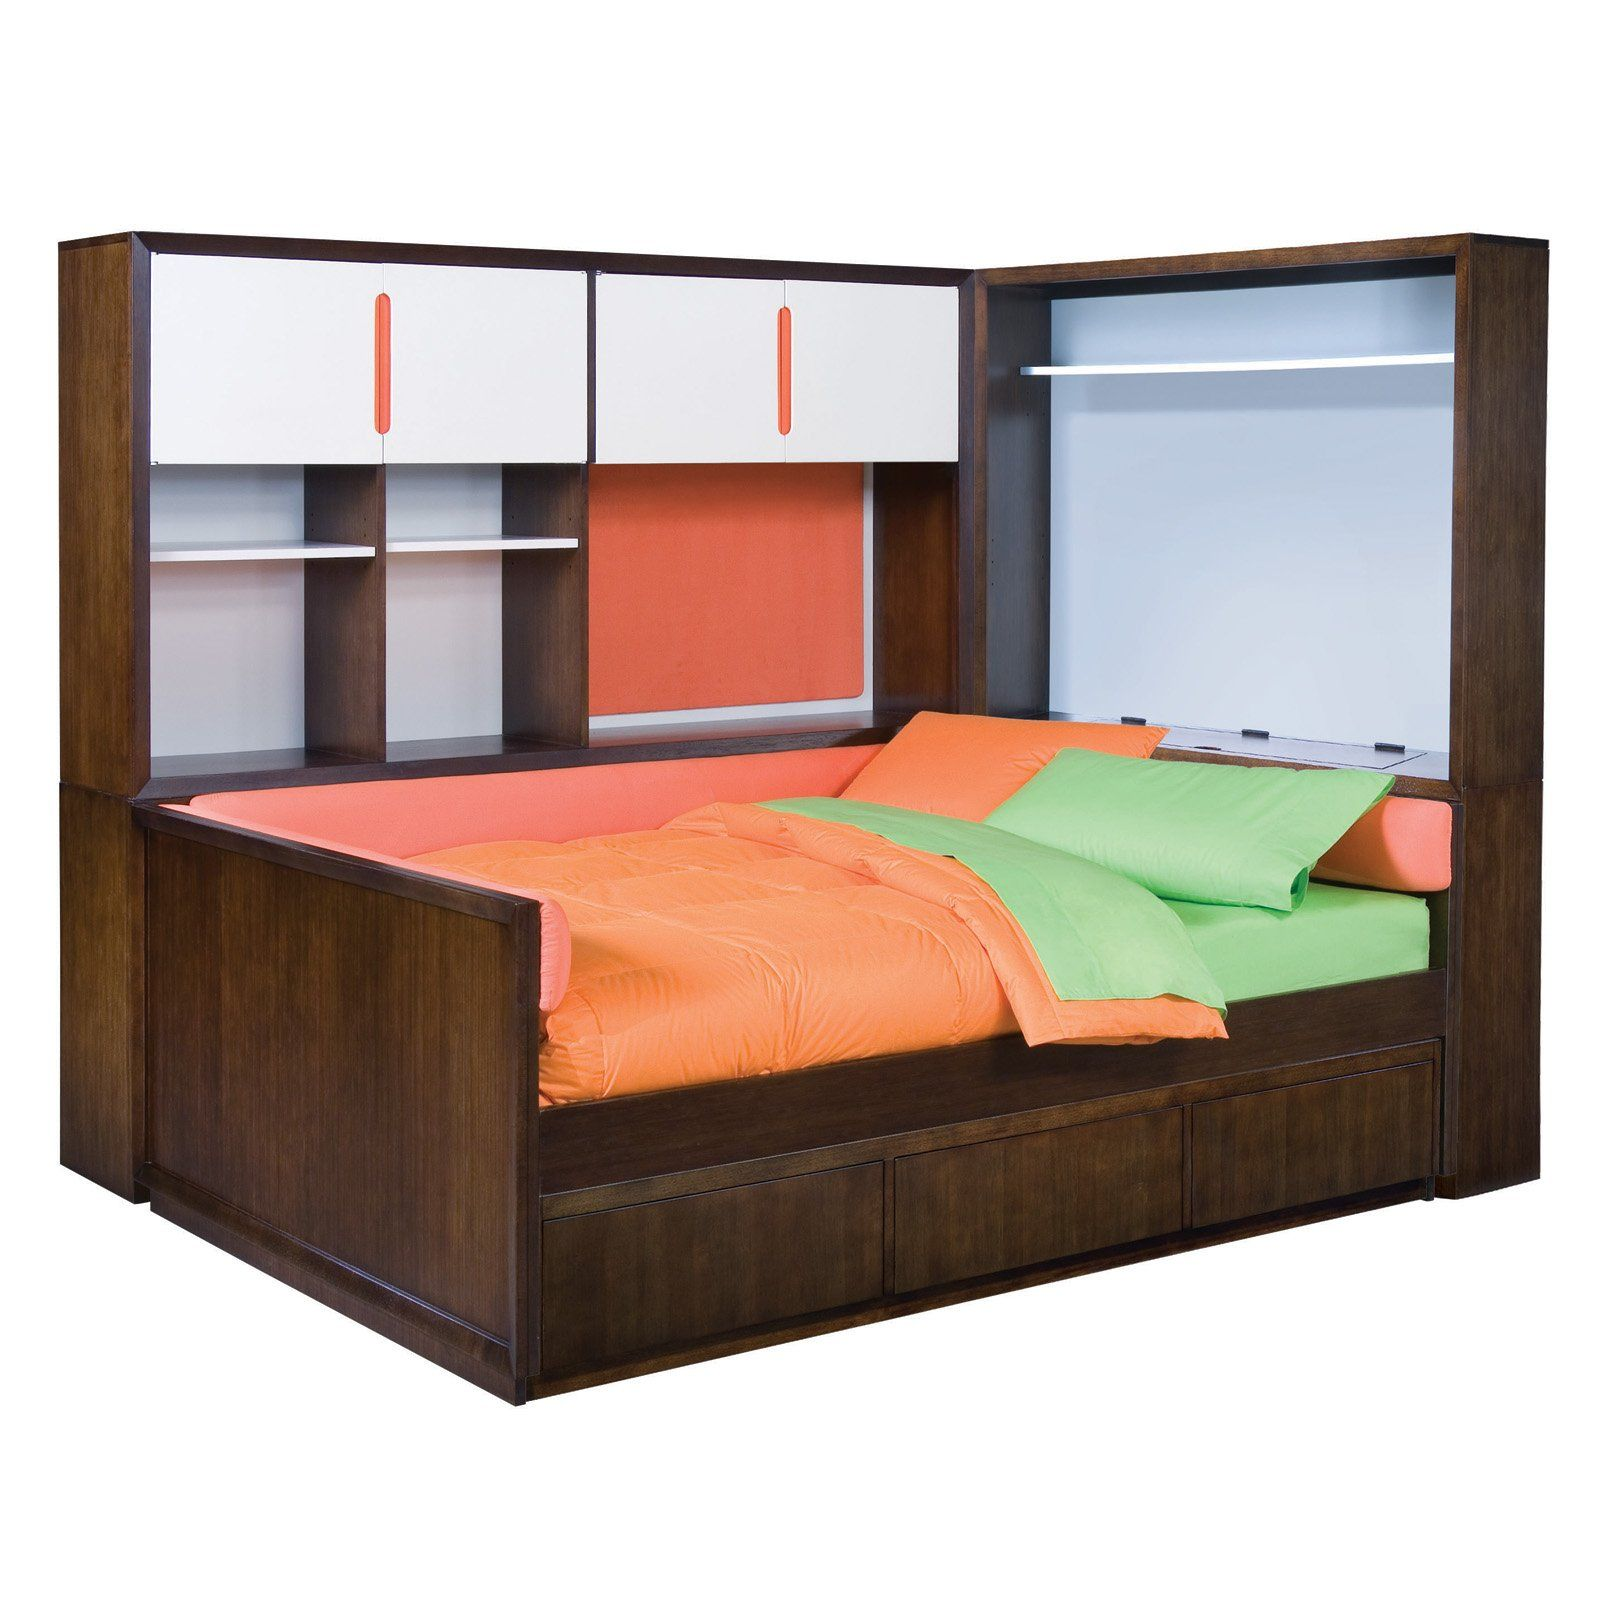 Daybeds For Sale Shop At Hayneedle Com Daybed With Storage